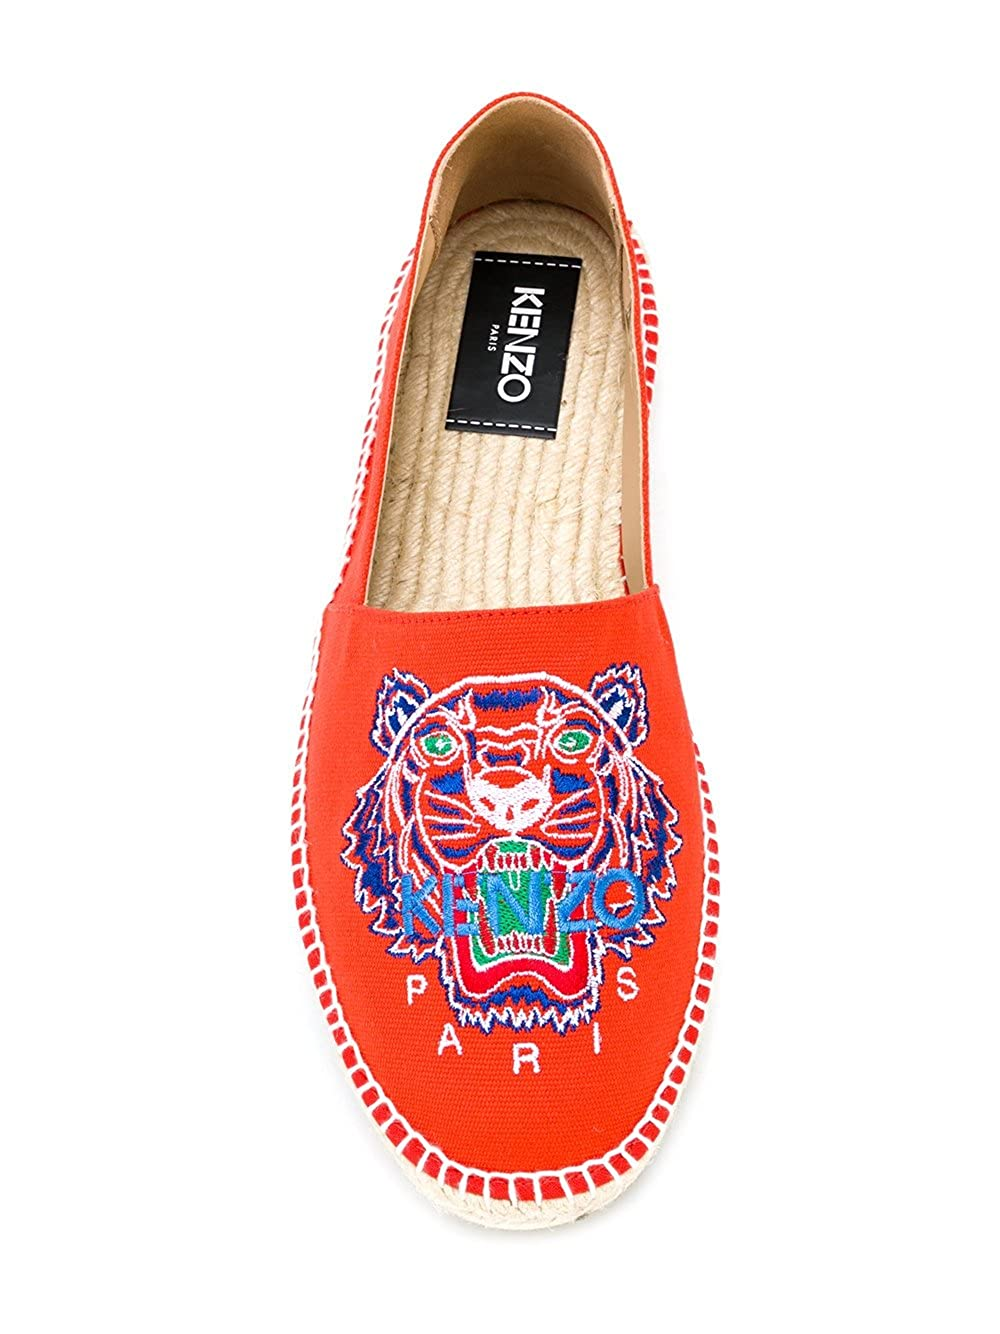 2bb19b9d6734 Kenzo , Espadrilles pour Homme Orange Orange IT - Marke Größe - Orange -  Orange, 43 IT - Marke Größe 43  Amazon.fr  Chaussures et Sacs